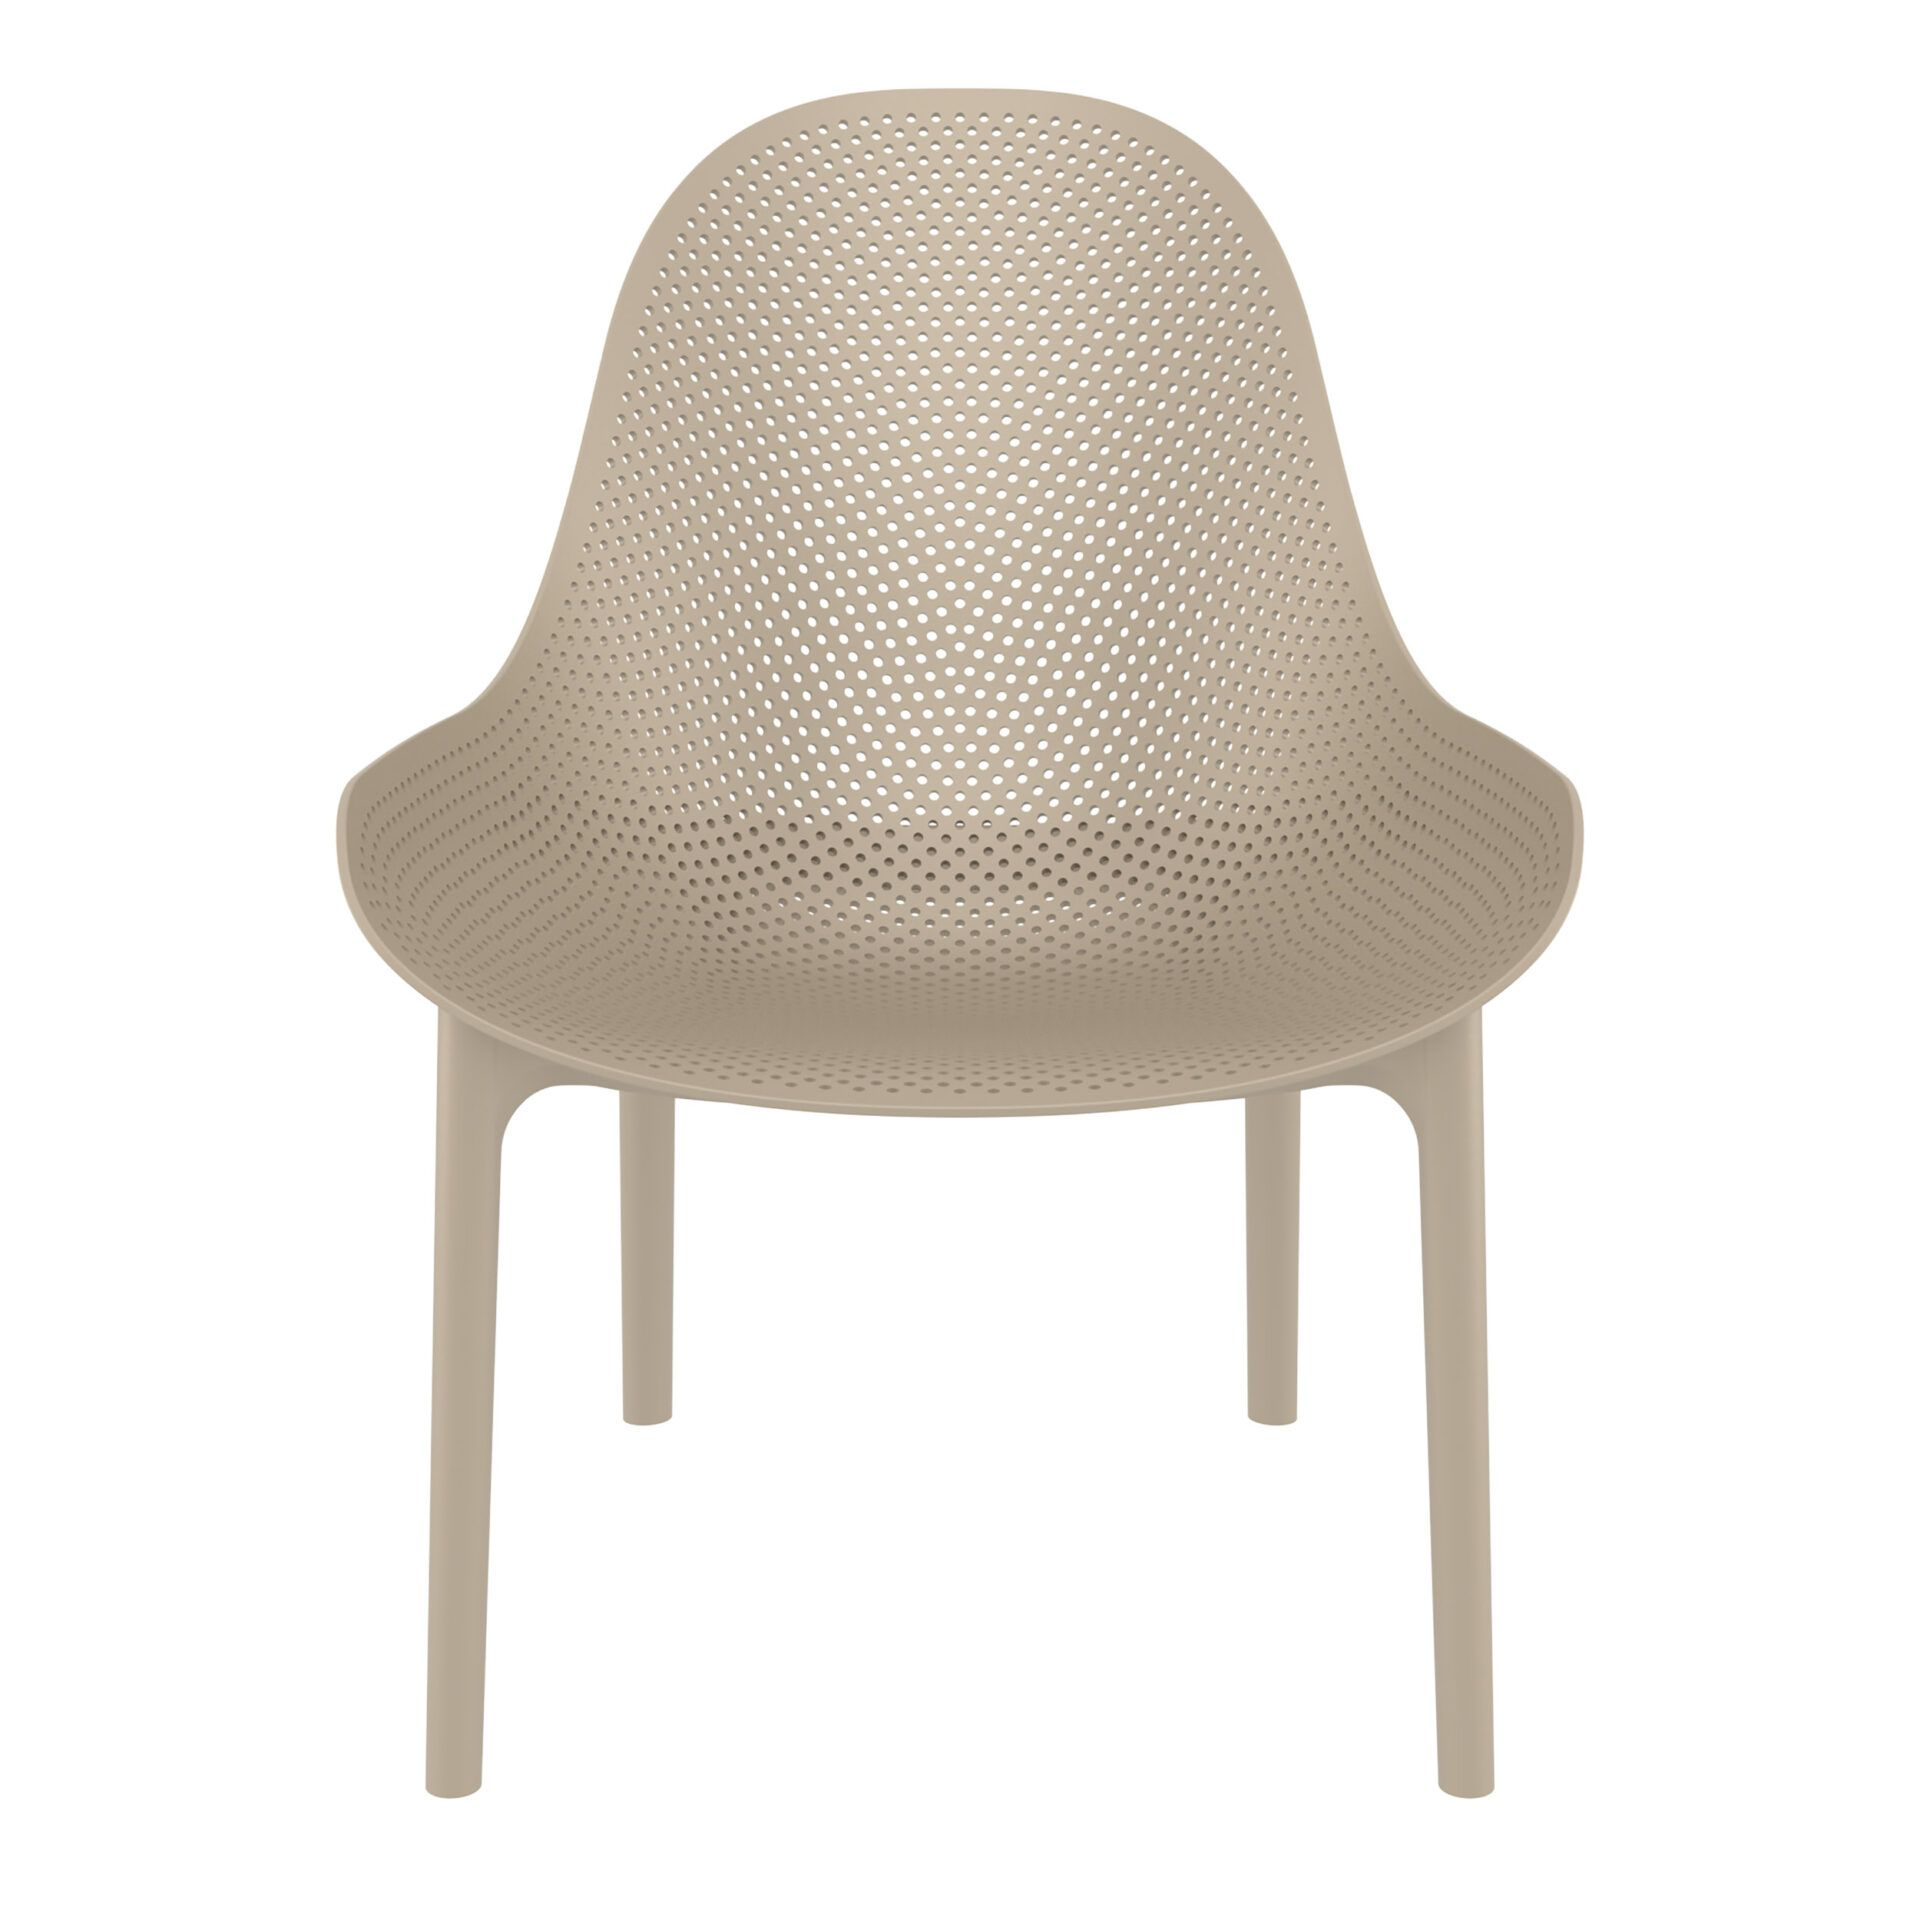 outdoor seating polypropylene sky lounge taupe front